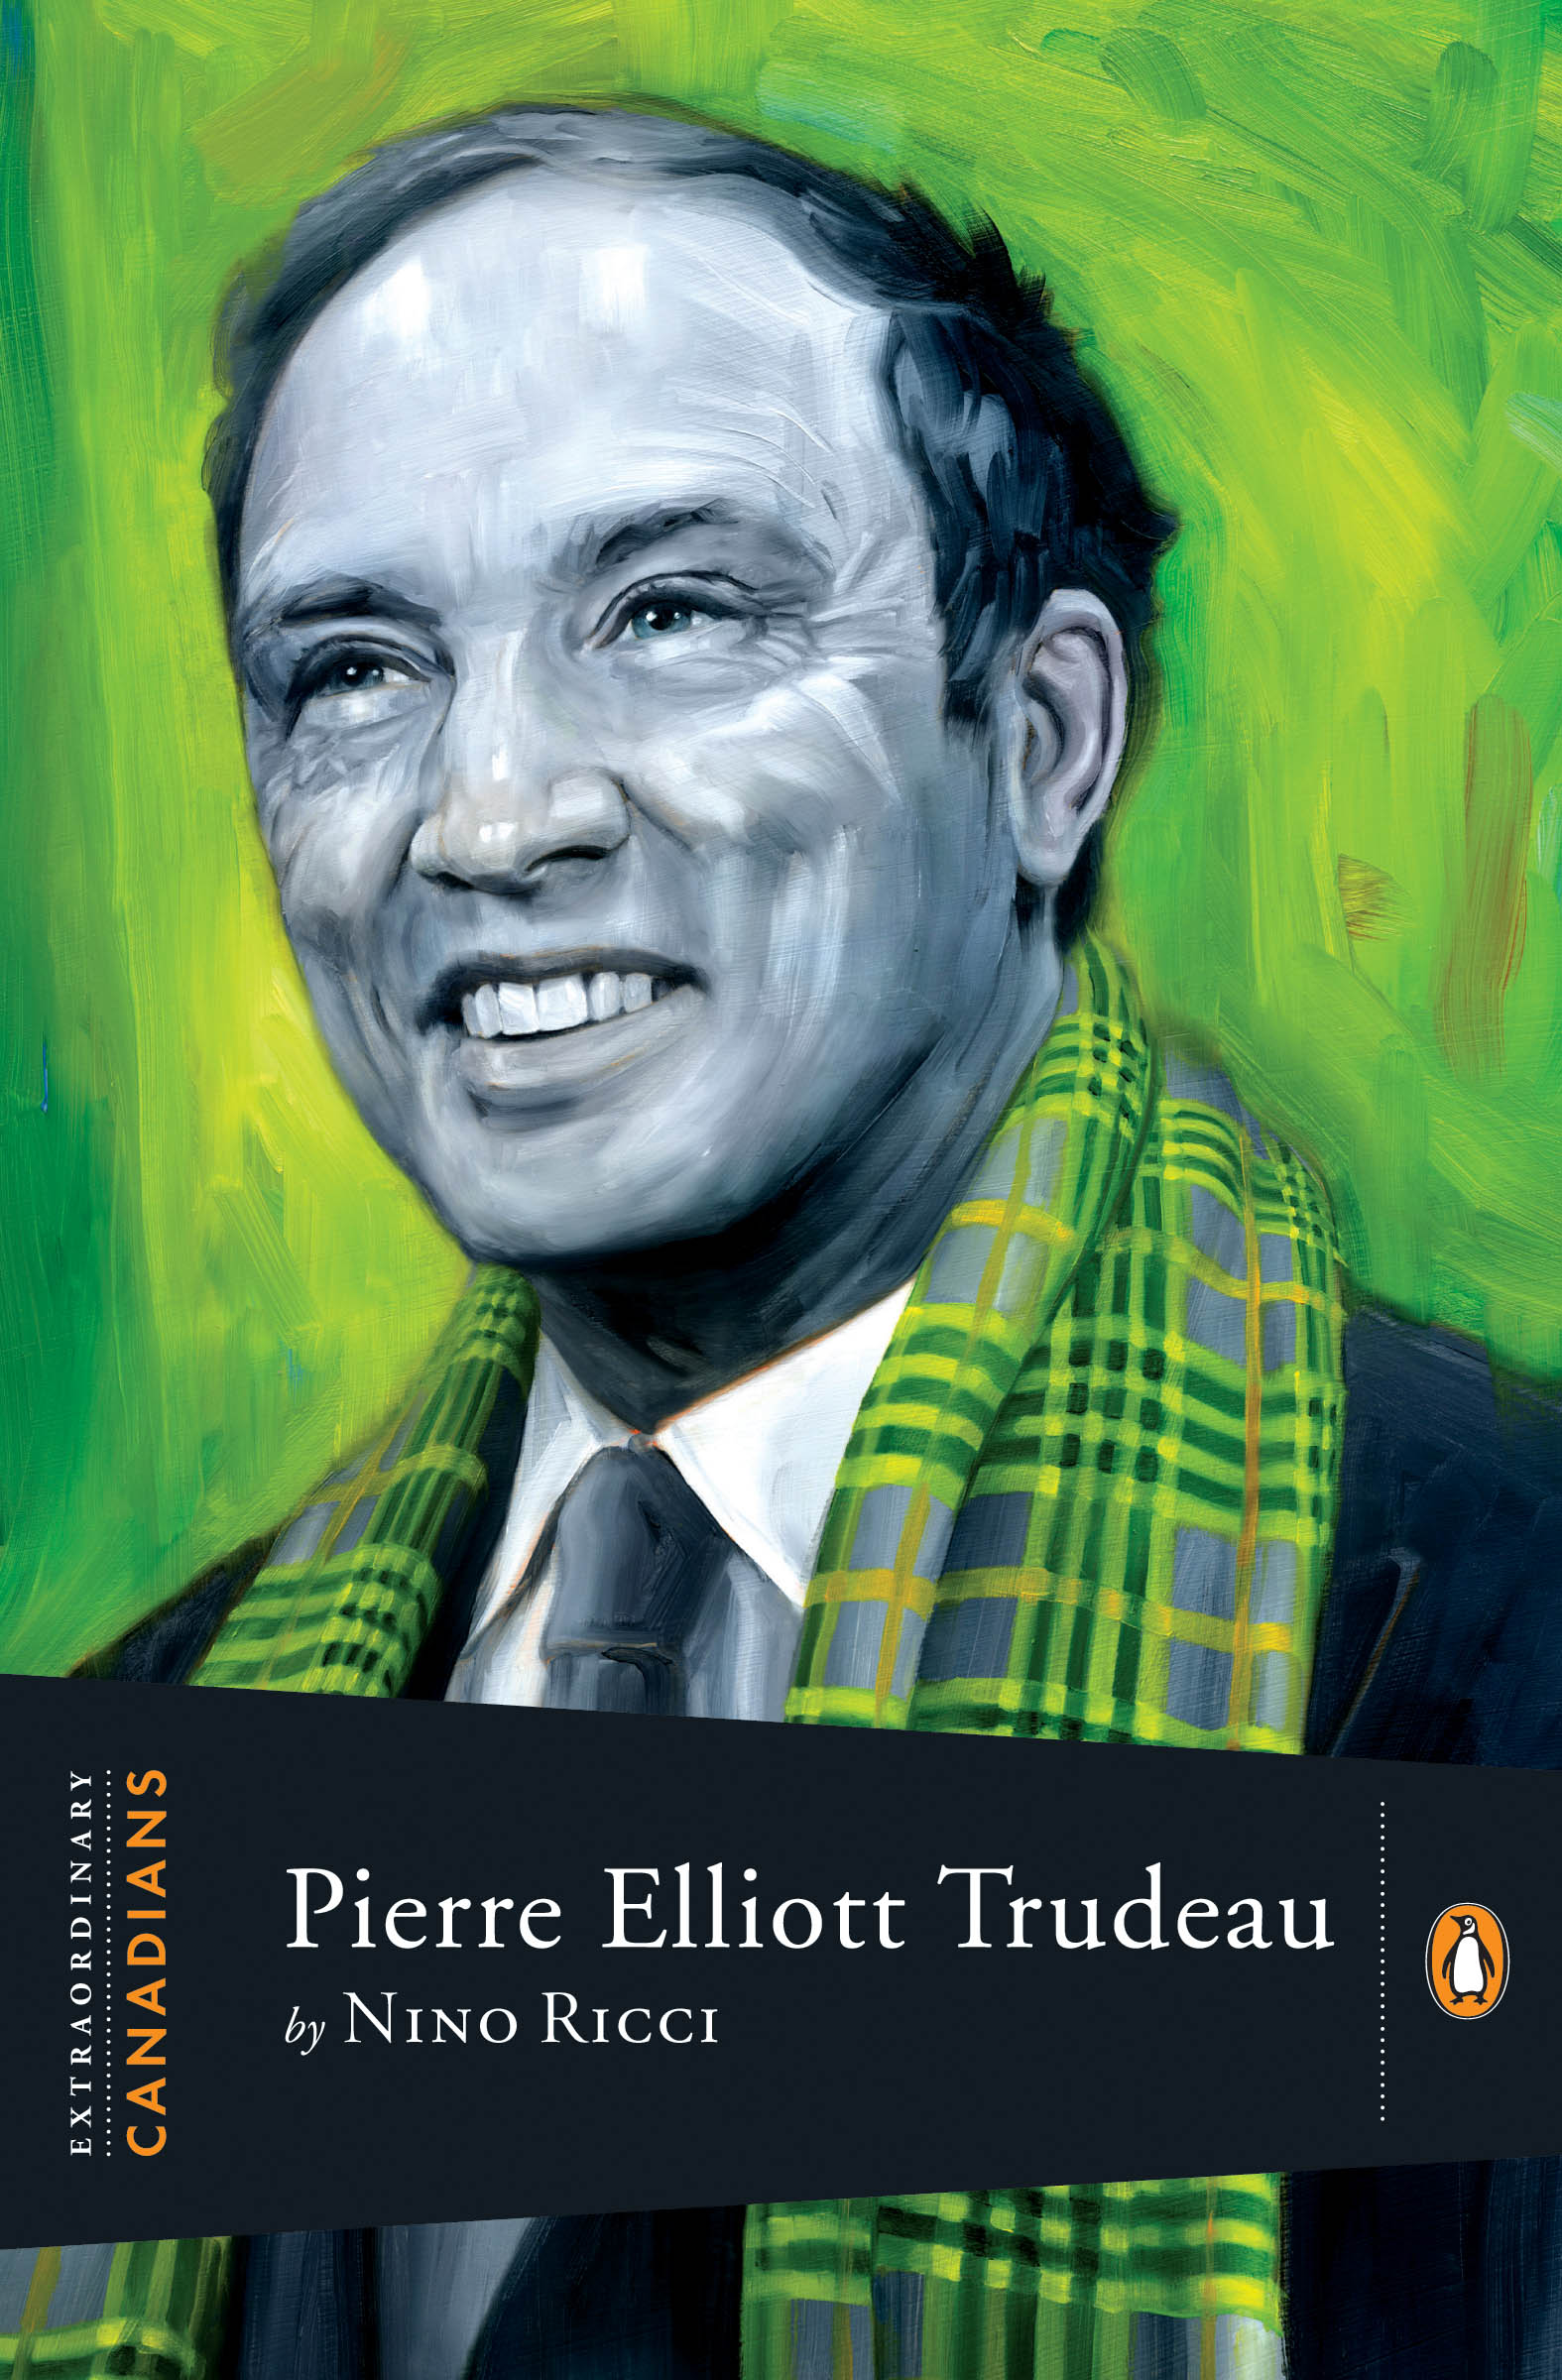 pierre elliot trudeau As a former canadian prime minister, pierre elliott trudeau was a flamboyant  and charismatic political giant who led the country through some of the most.